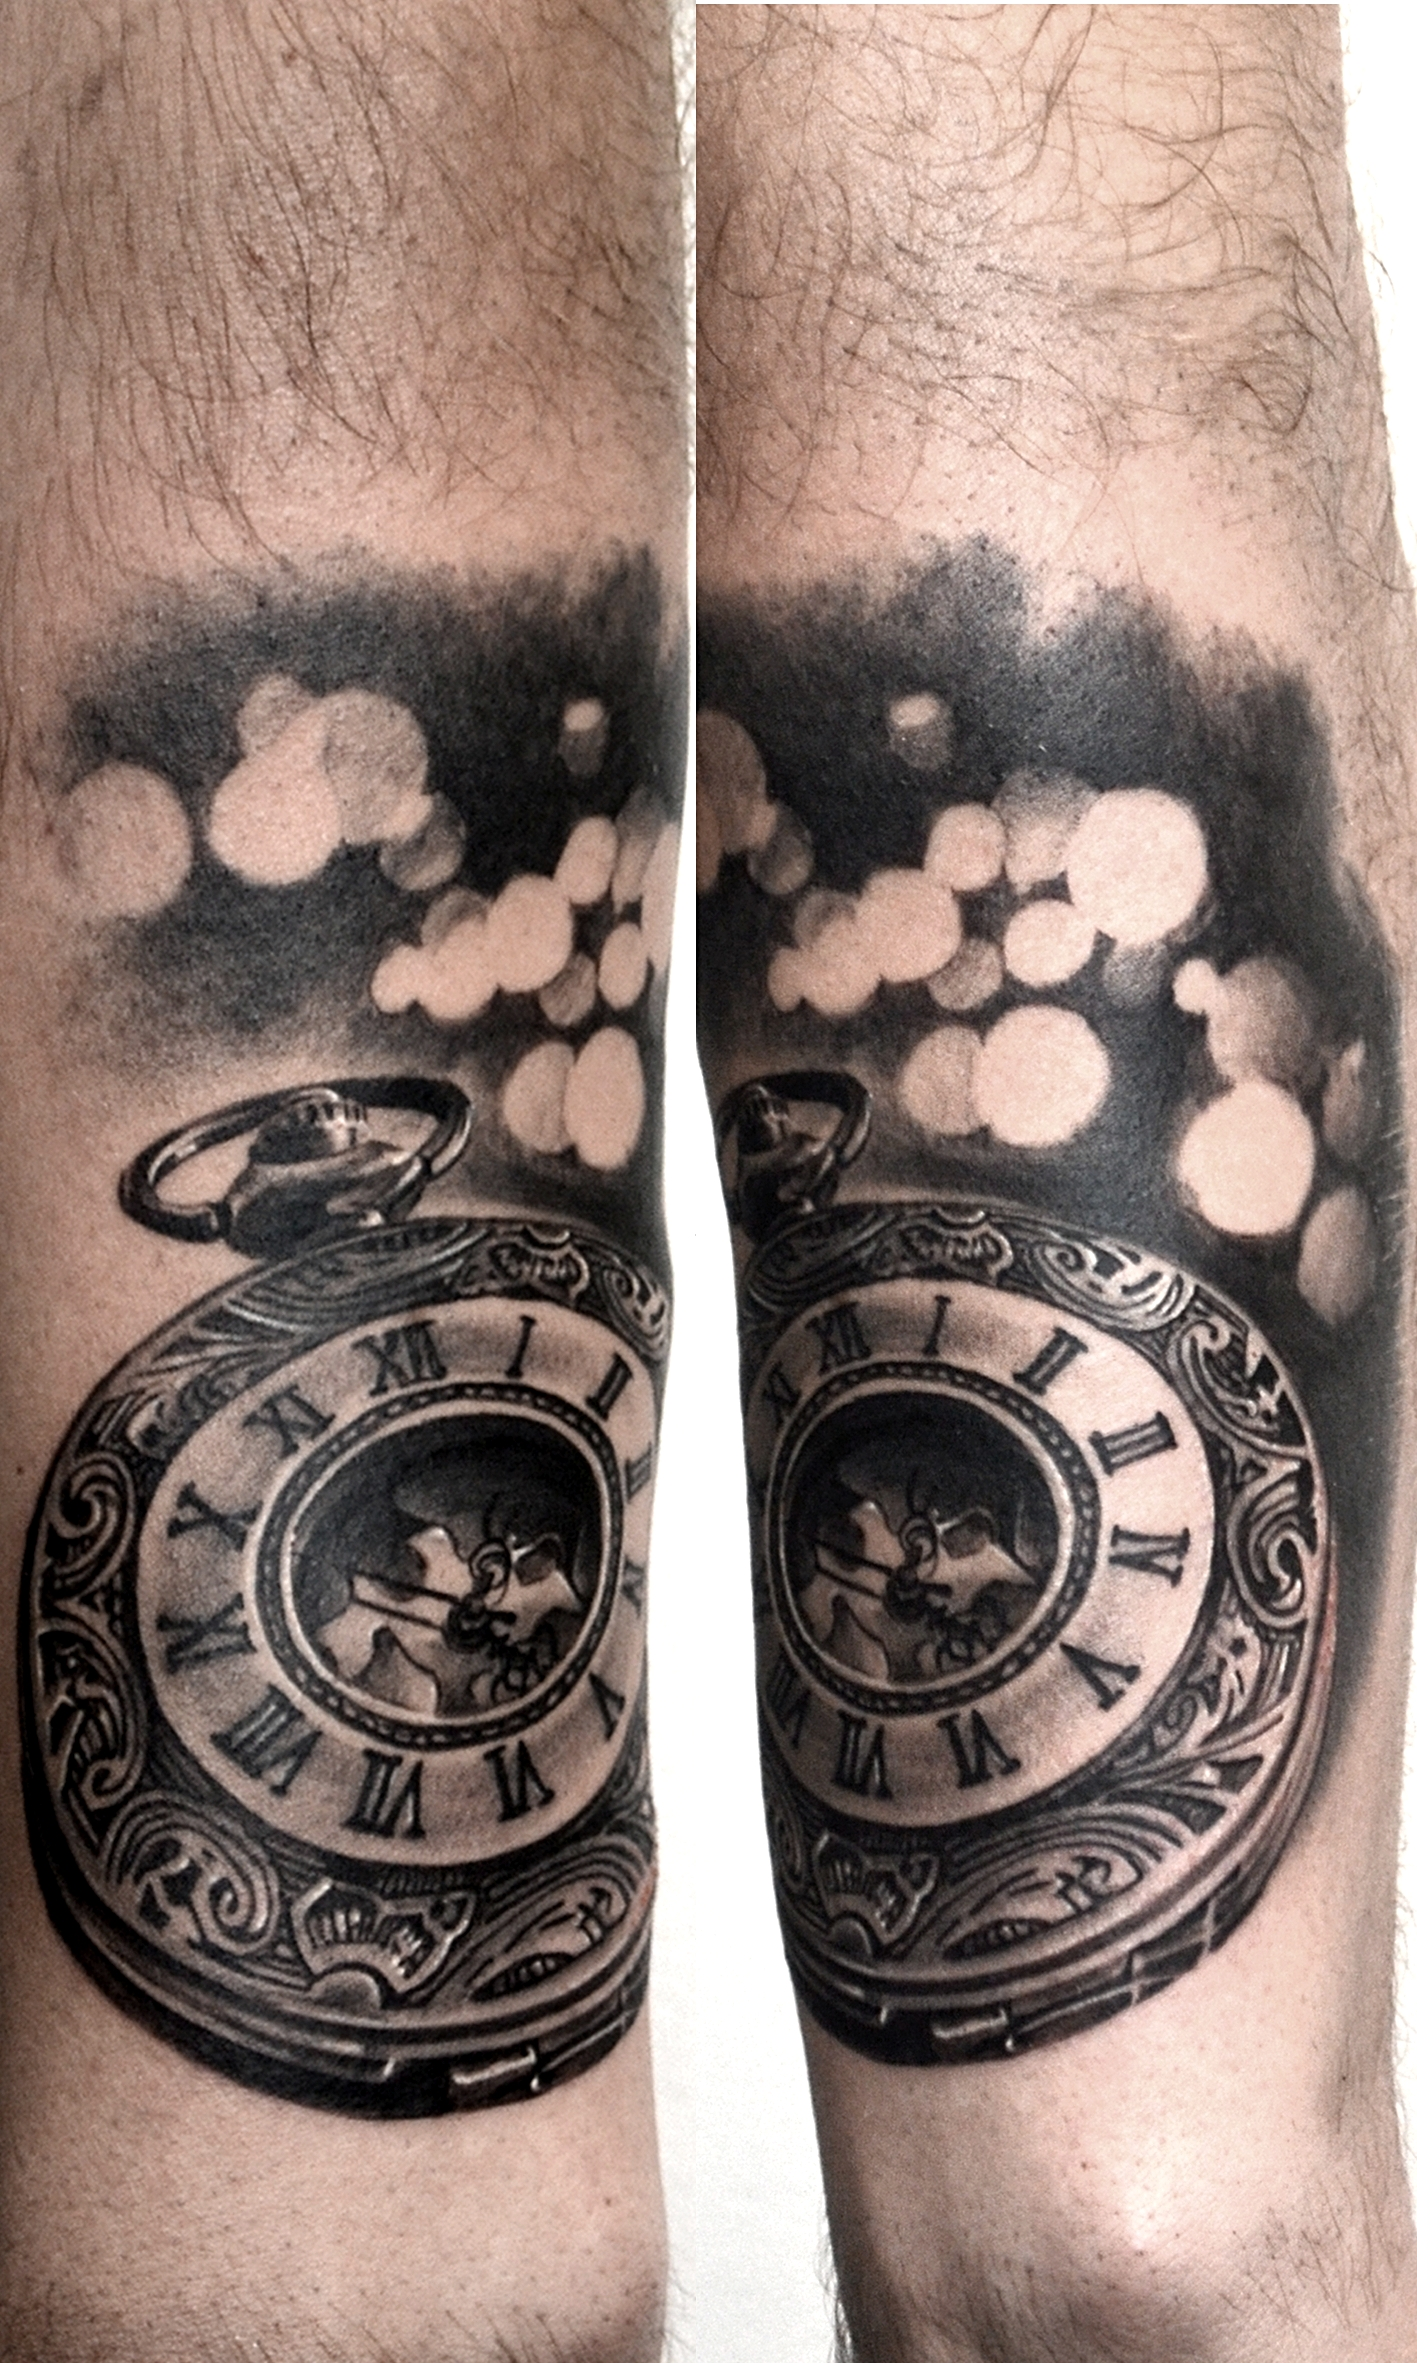 tattoo pocket watch black corner